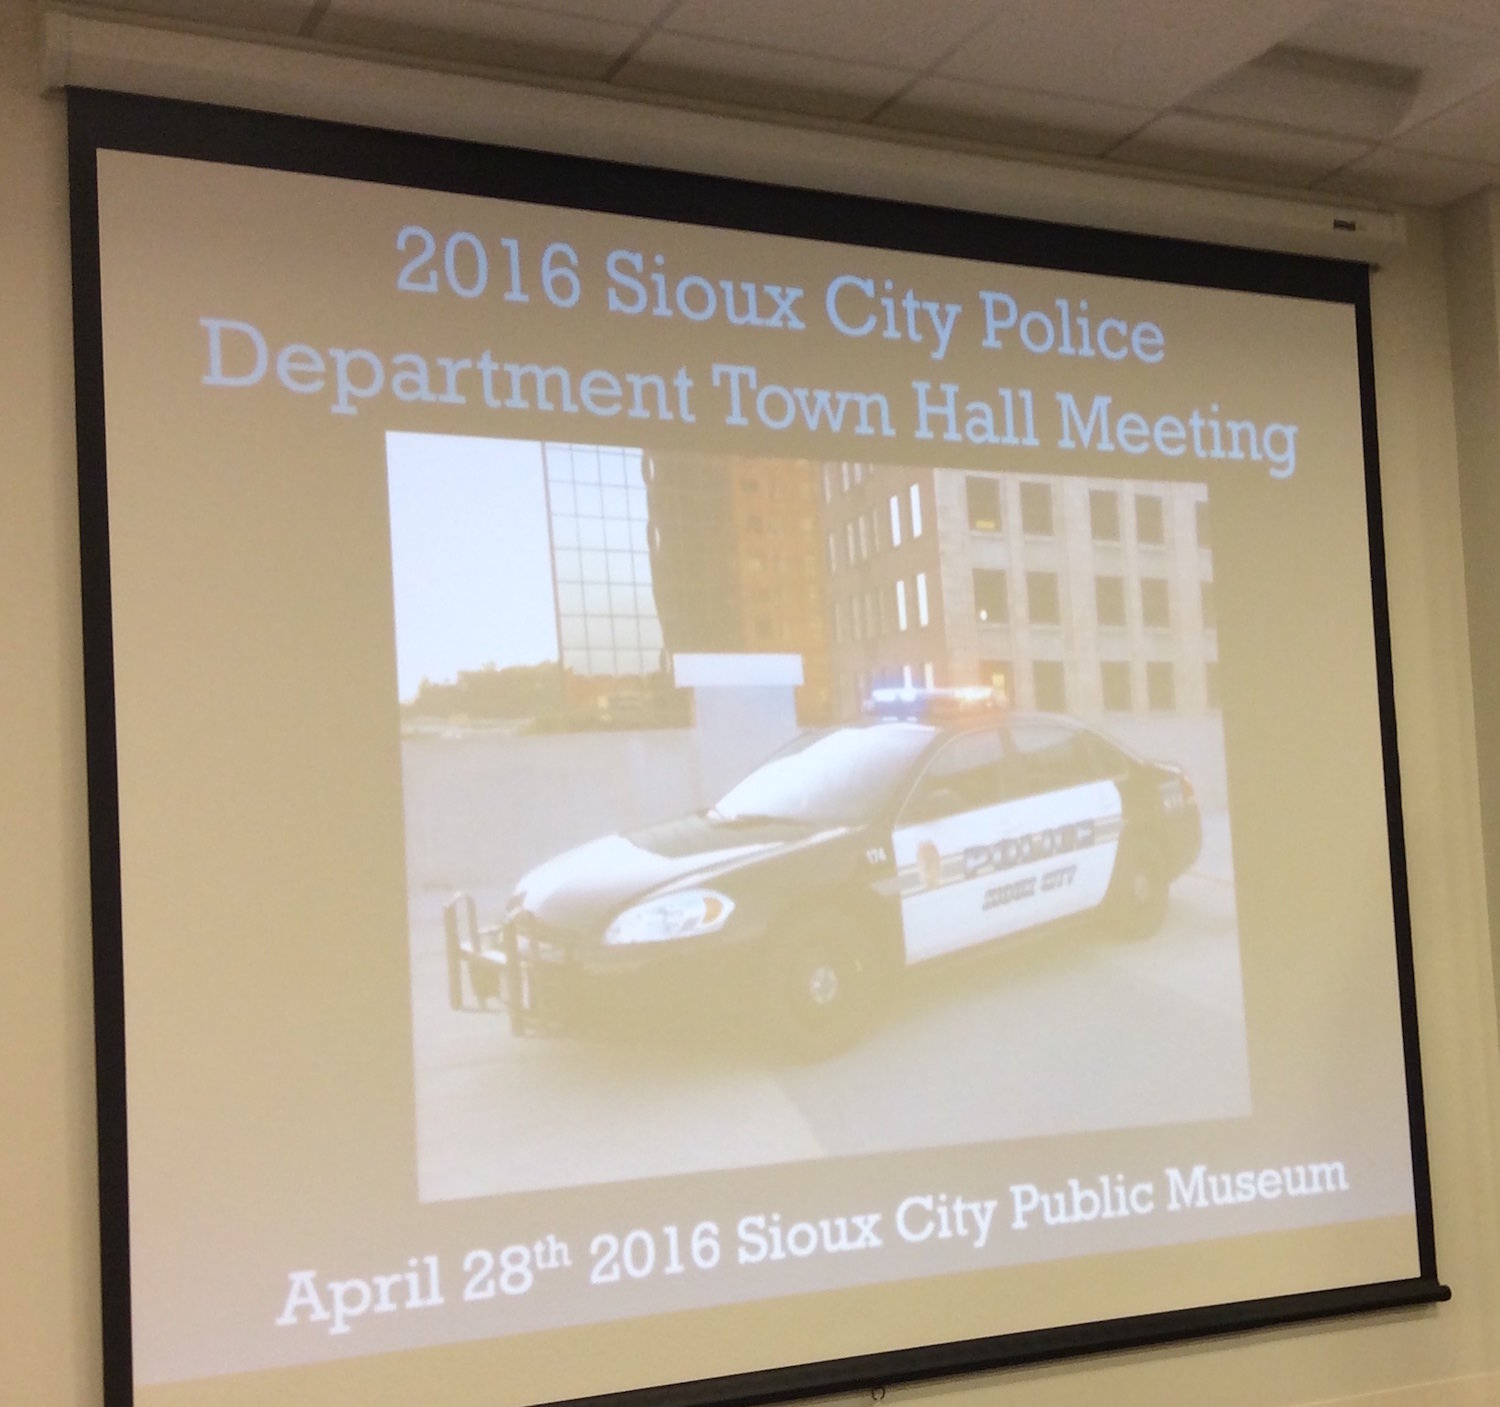 Sioux City Police hold 2016 Town Hall